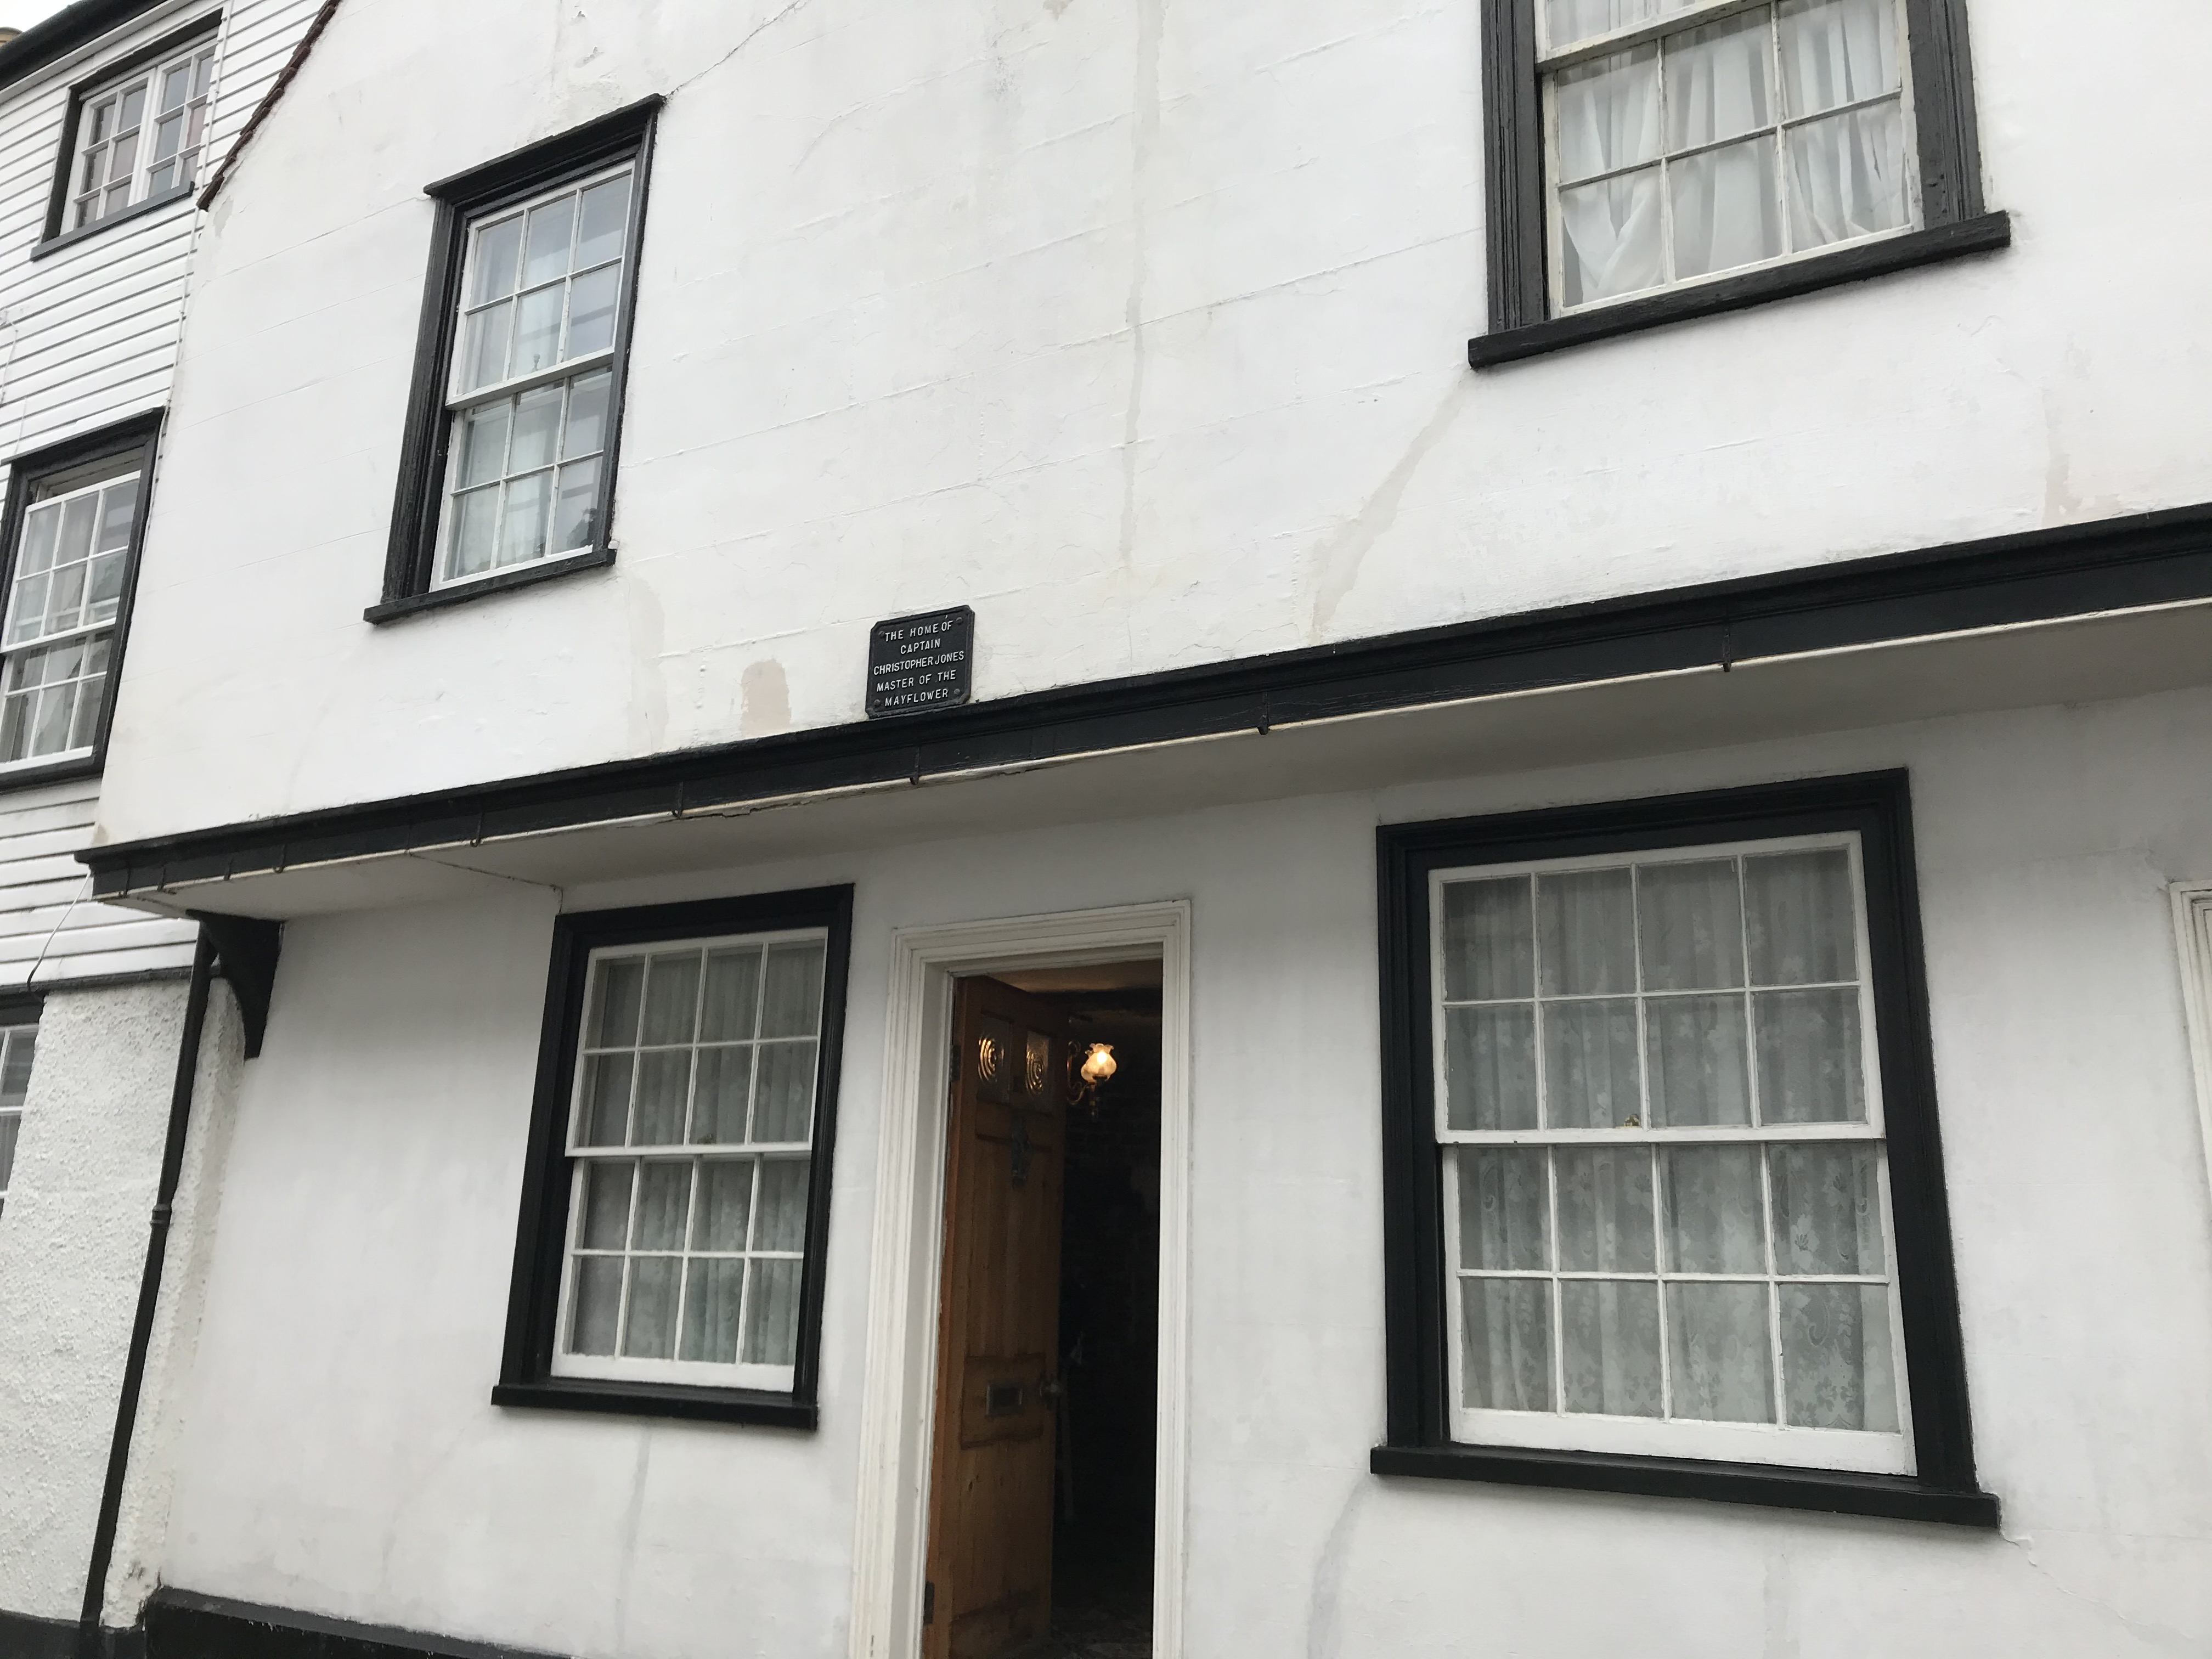 The house where Christopher Jones, captain of the Mayflower, once lived in King's Head Street in Harwich